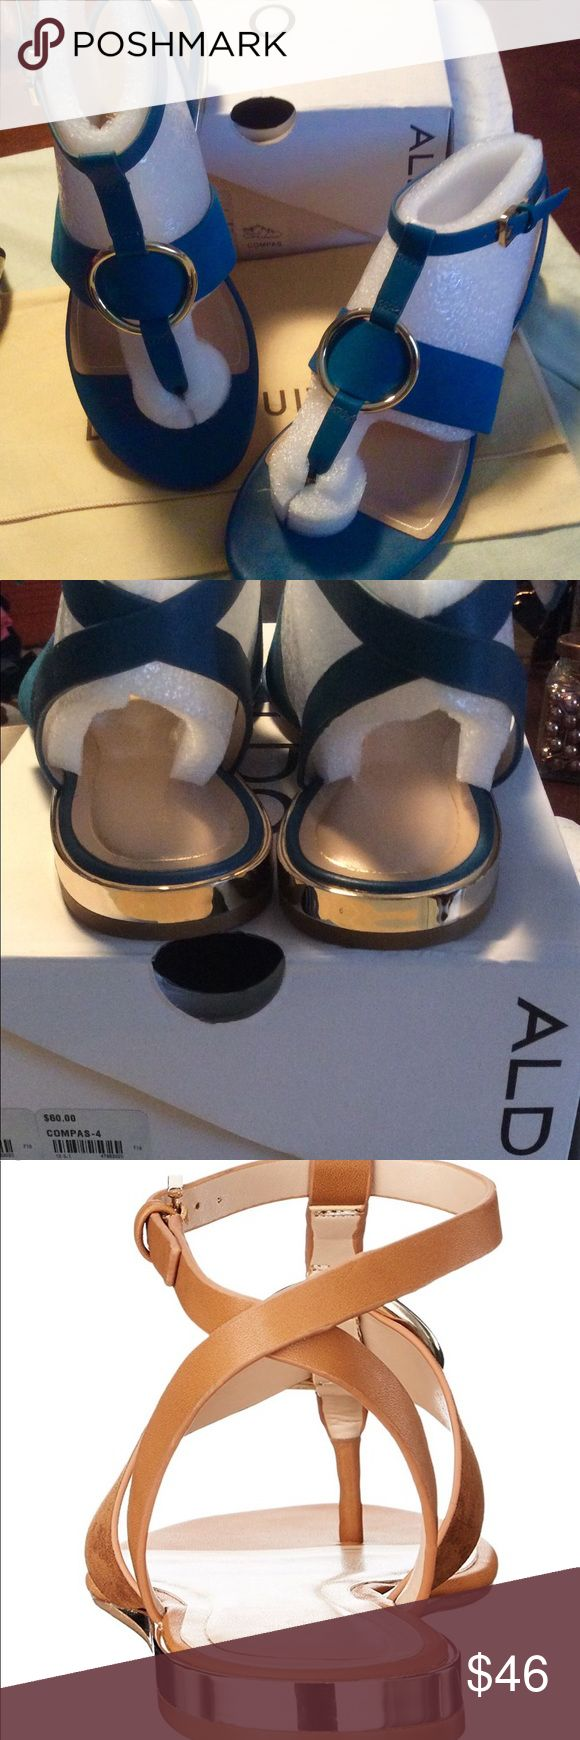 NEW Aldo Leather Sandals These NEW Aldo Compas Flat Sandals in a beautiful Aqua color leather with gold buckle detailing. Original box Size 7.5 $46 other colors are not available.  🎀 Please ask all your questions before you purchase. I'm happy 😊 to help 🎀 Sorry, no trades or hold. 🎀 Please use the Offer Button. 🎀 Bundle for your best prices. 🎀 Ships same day, if possible.  🎀 Free gift with every purchase. 🎀 Thank you for visiting my closet.🎀 Aldo Shoes Sandals